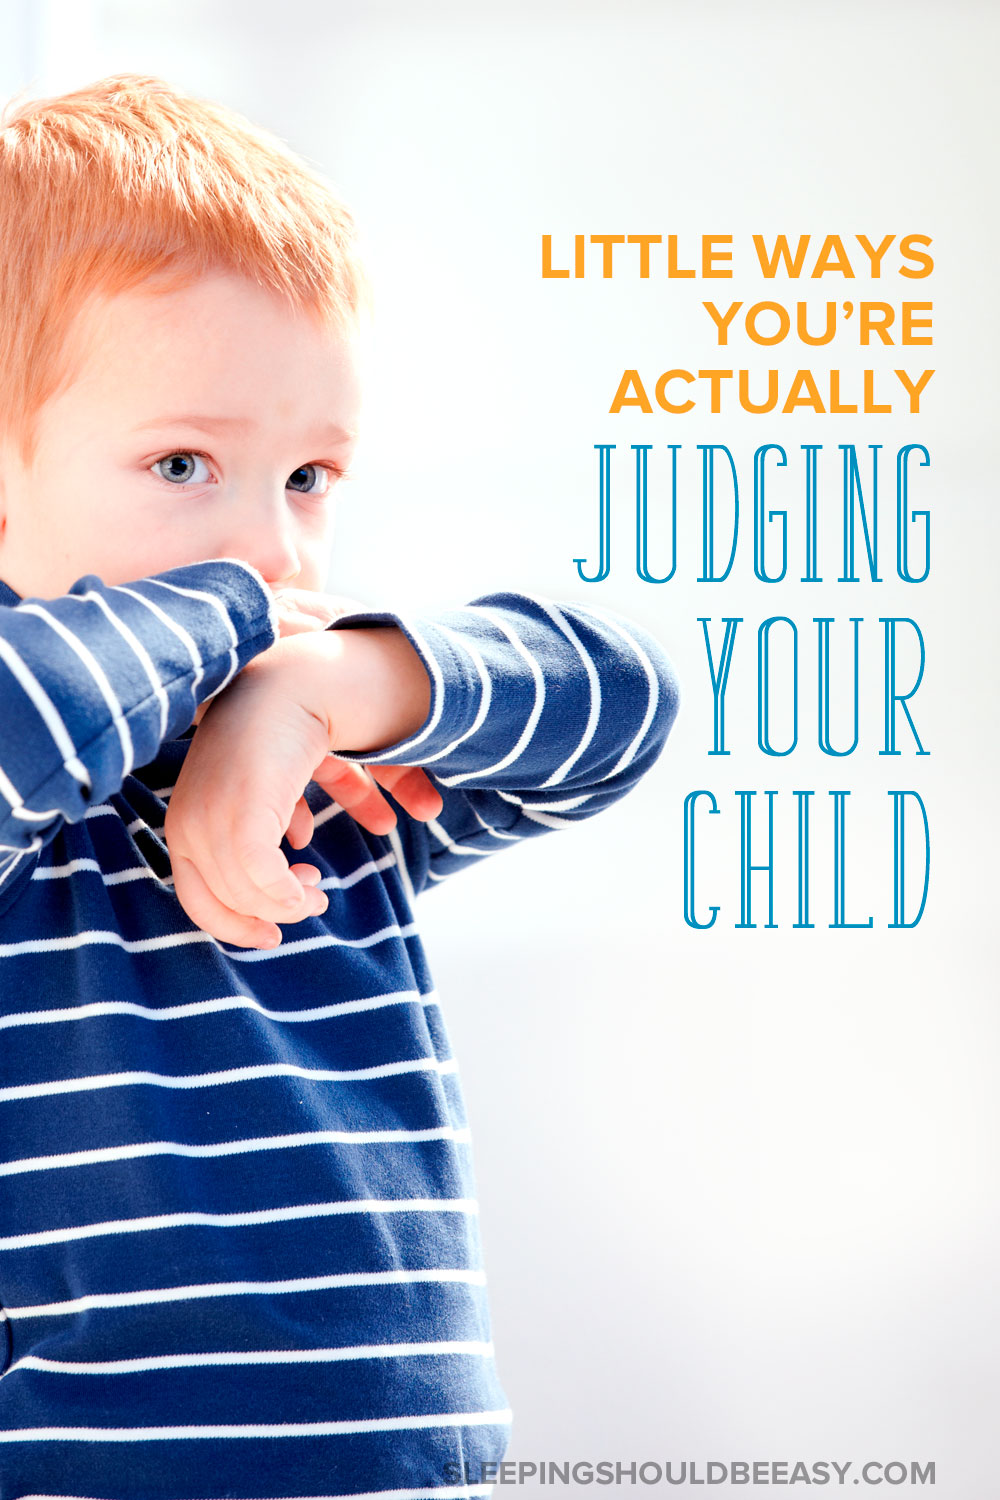 Do you act different when your child is throwing a fit than when he is happy and excited? Avoid the mistake of judging emotions and learn to meet the emotional needs of children.